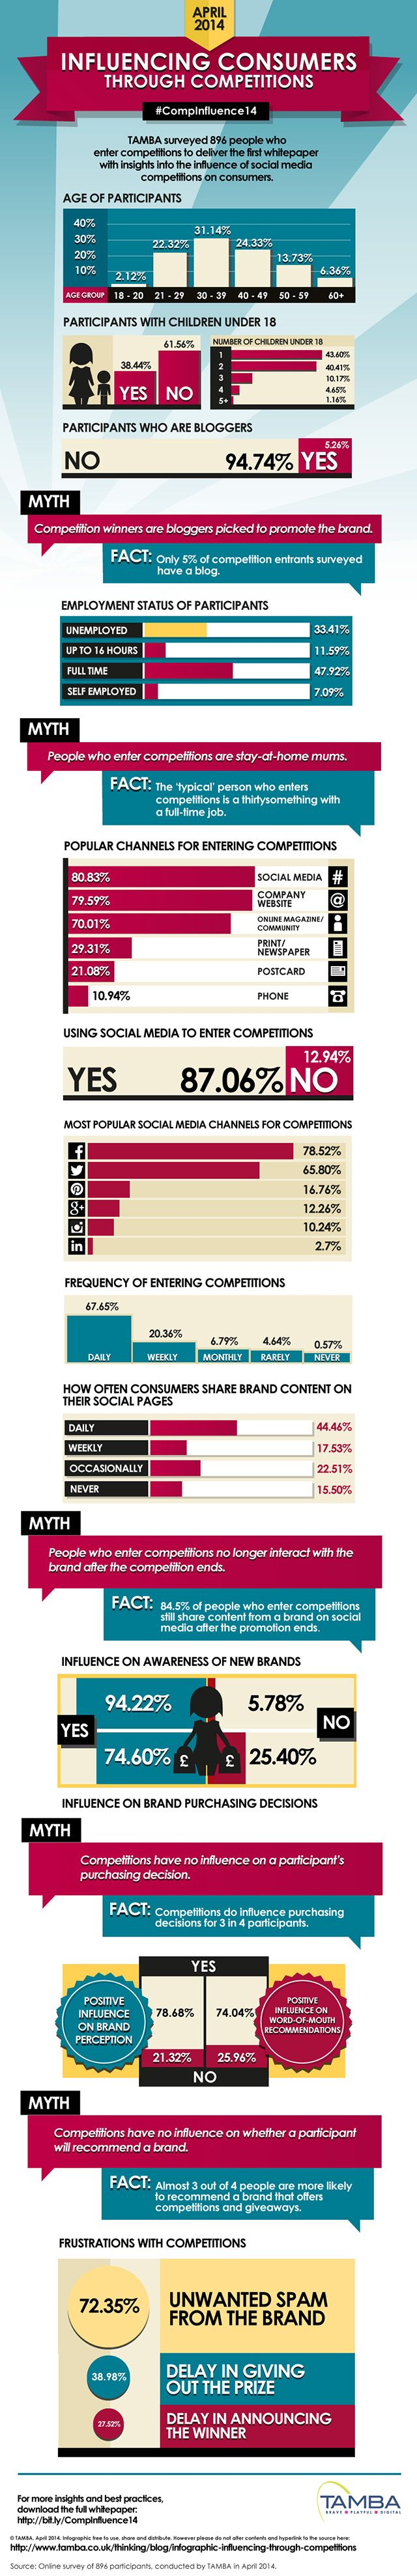 Infographic - the results of Tamba's comping survey